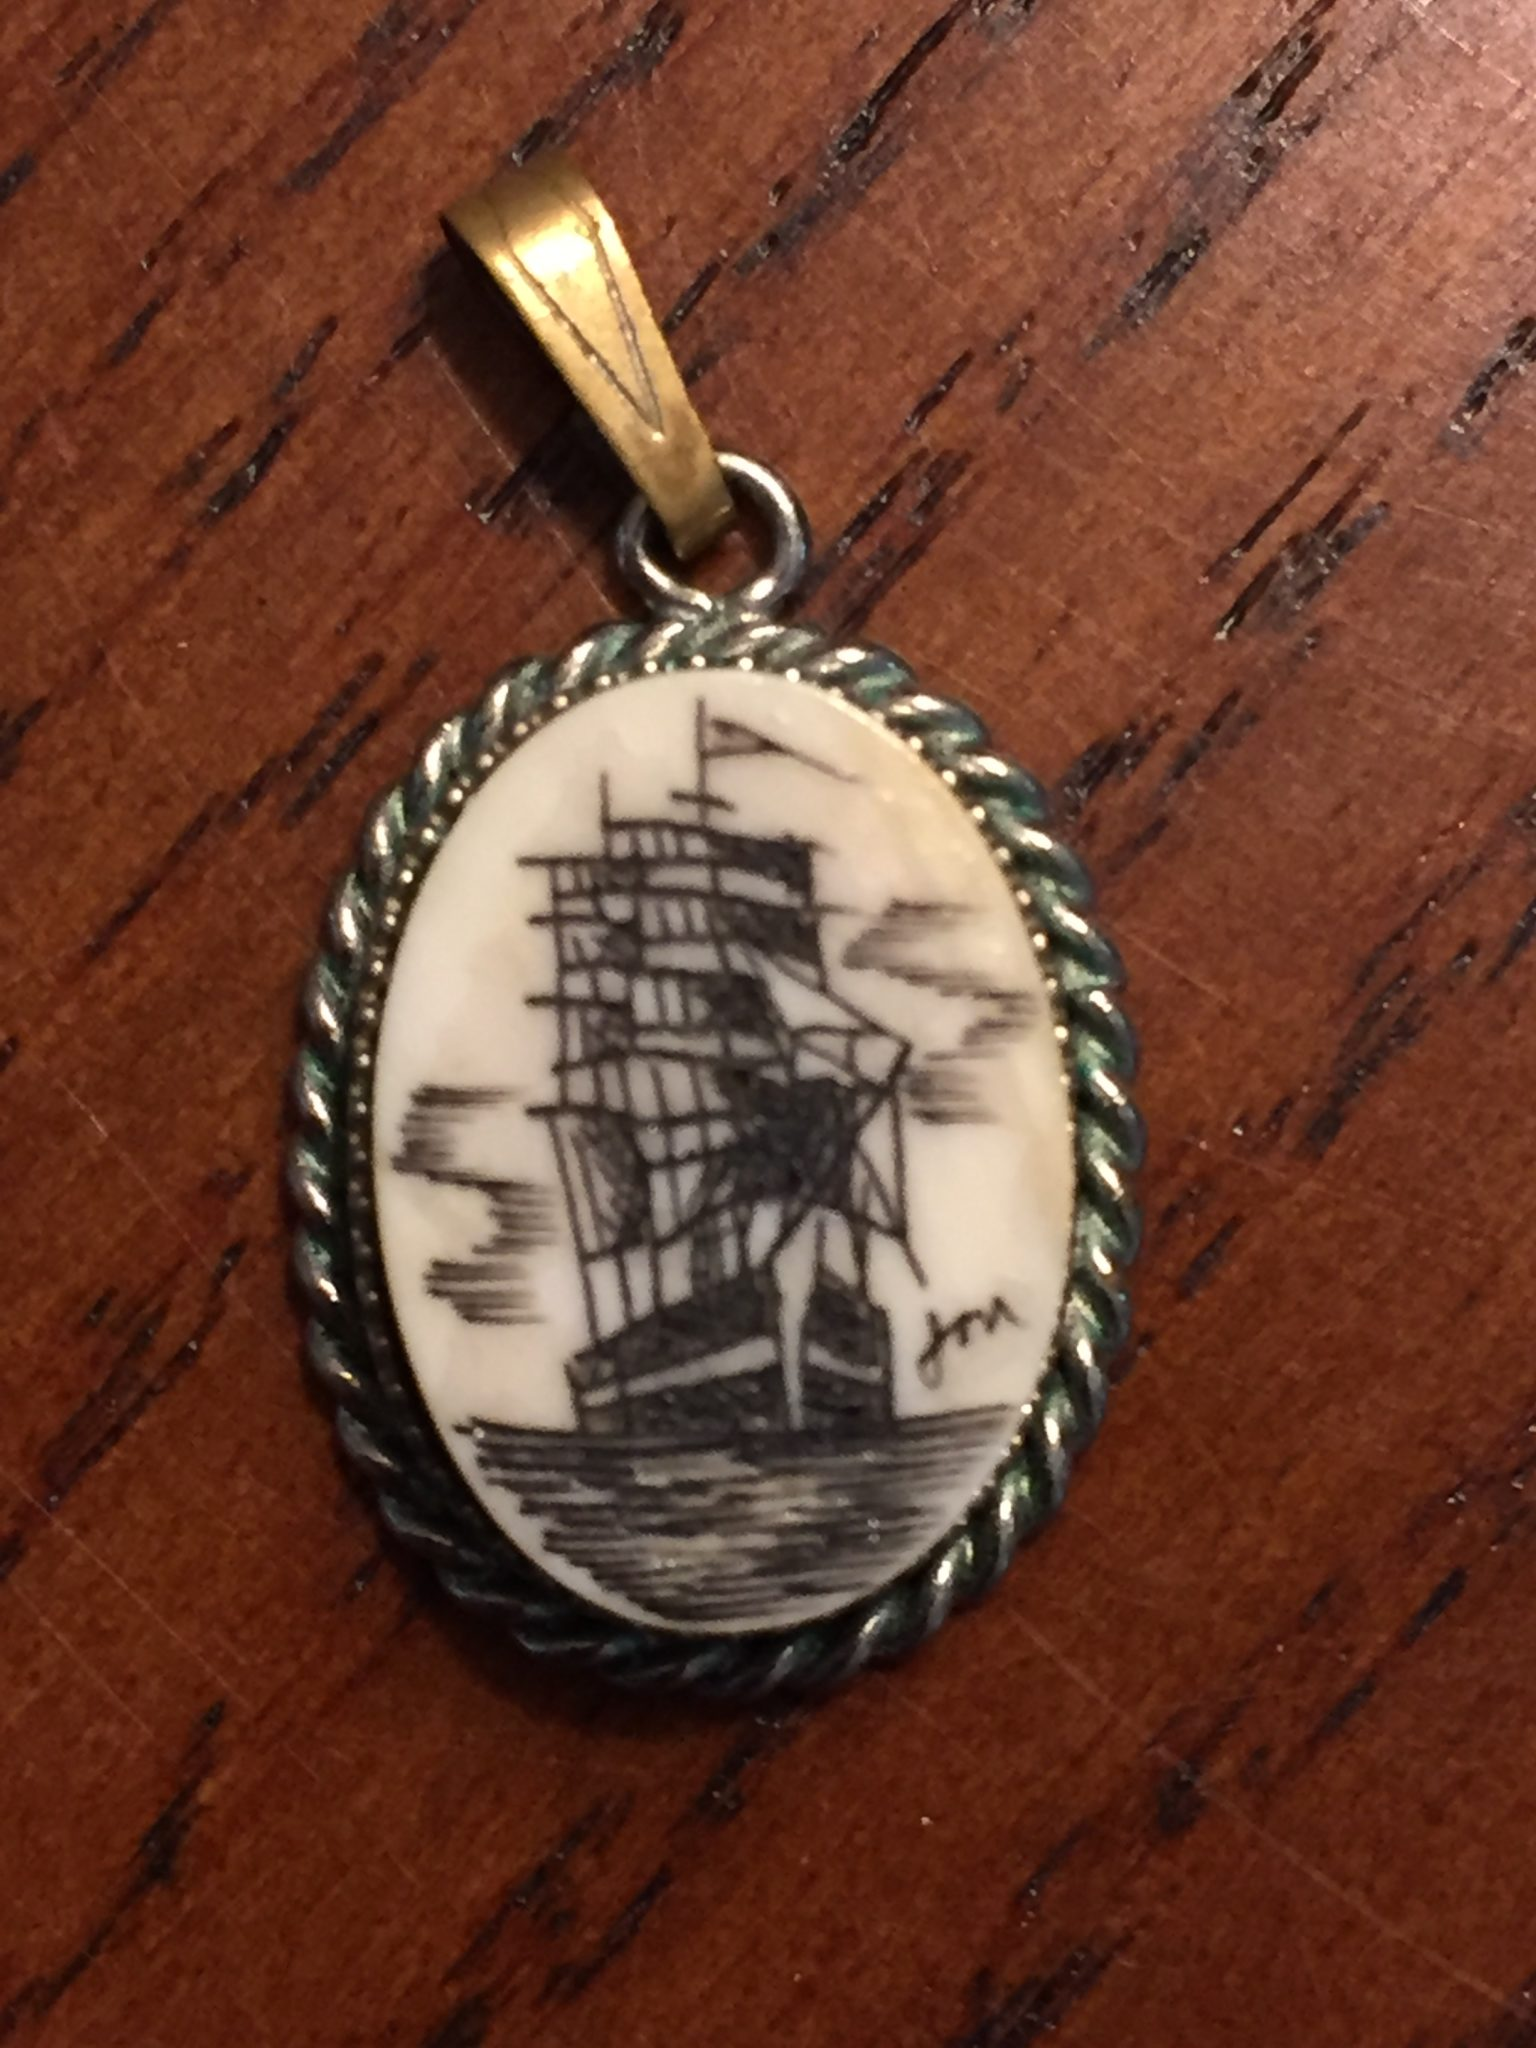 Mystery Artist 25 Necklace Charm of a ship at sea in full sail